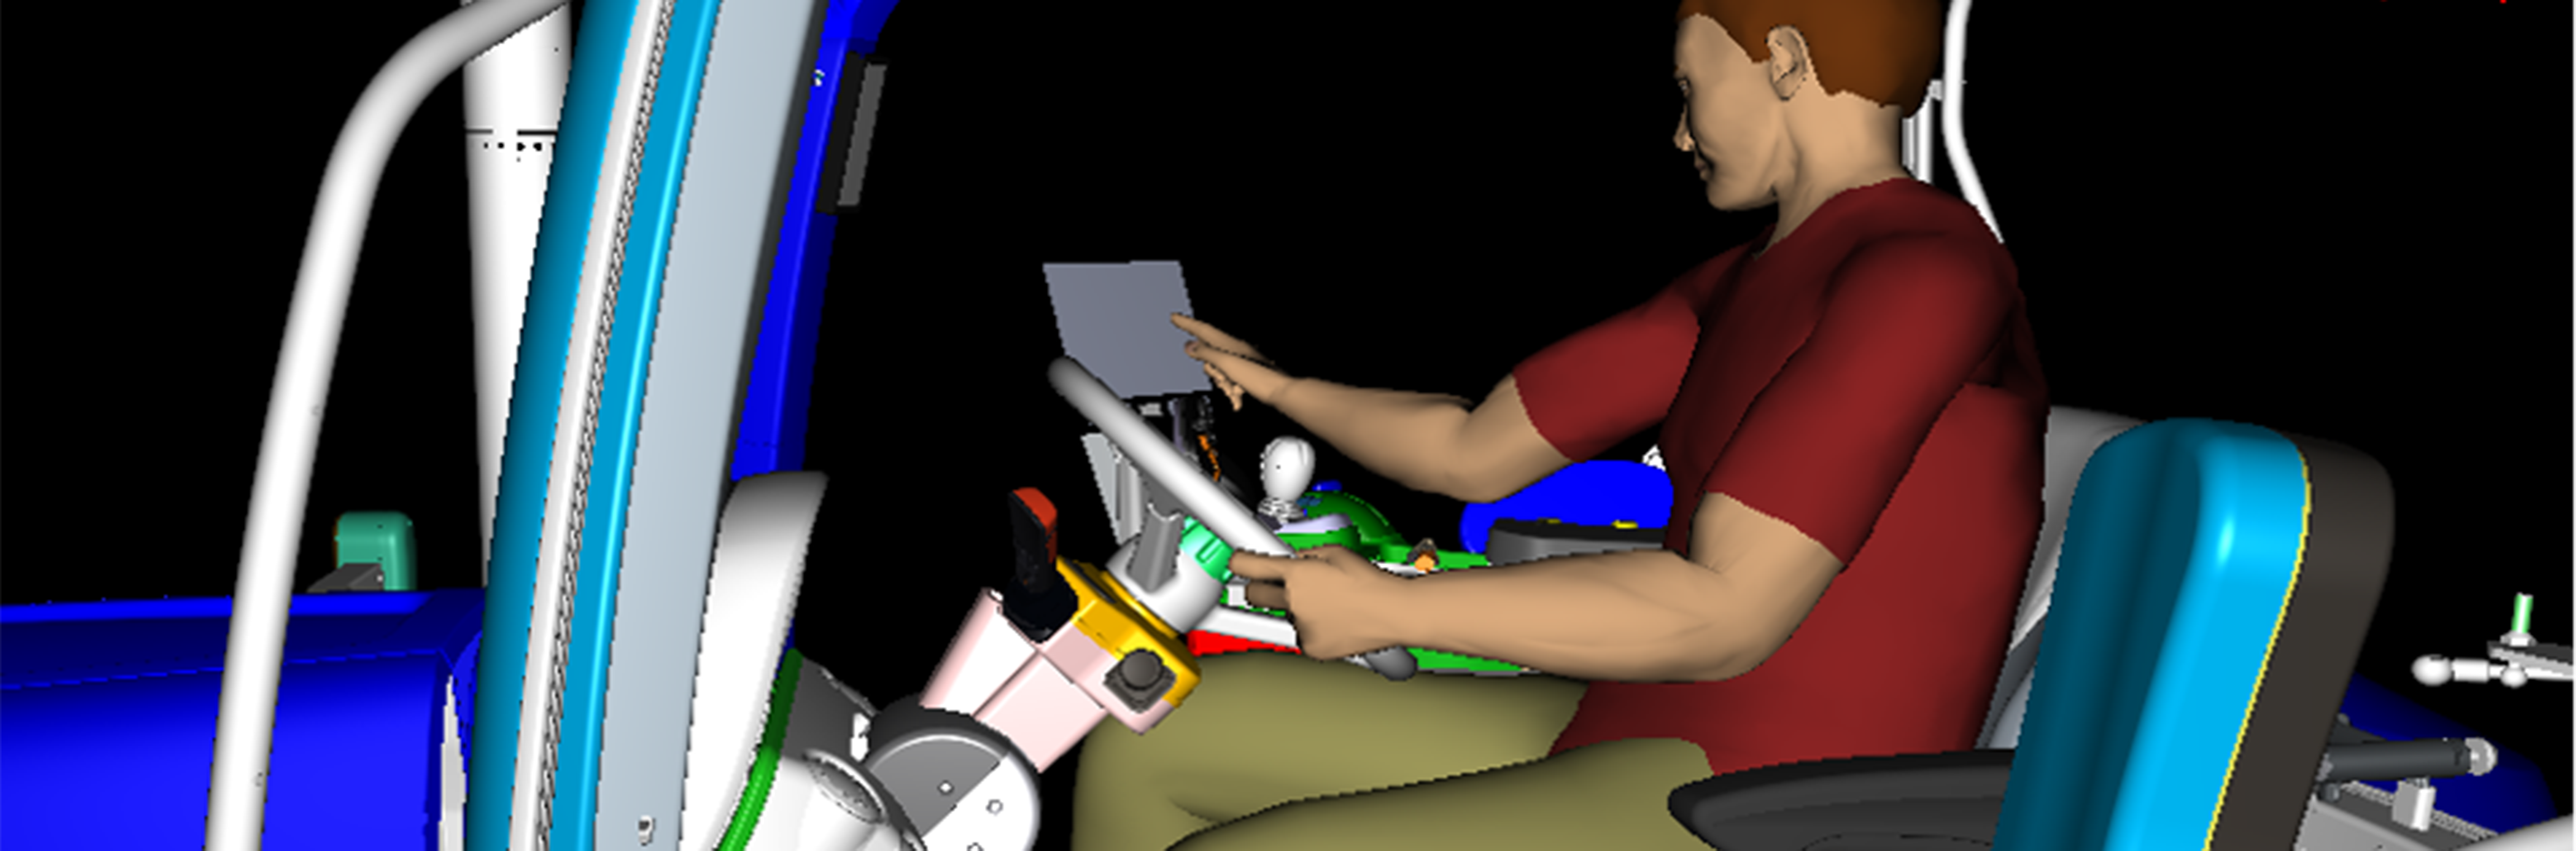 XiLab uses Human Digital Simulation to optimize design and promote a human-centric approach